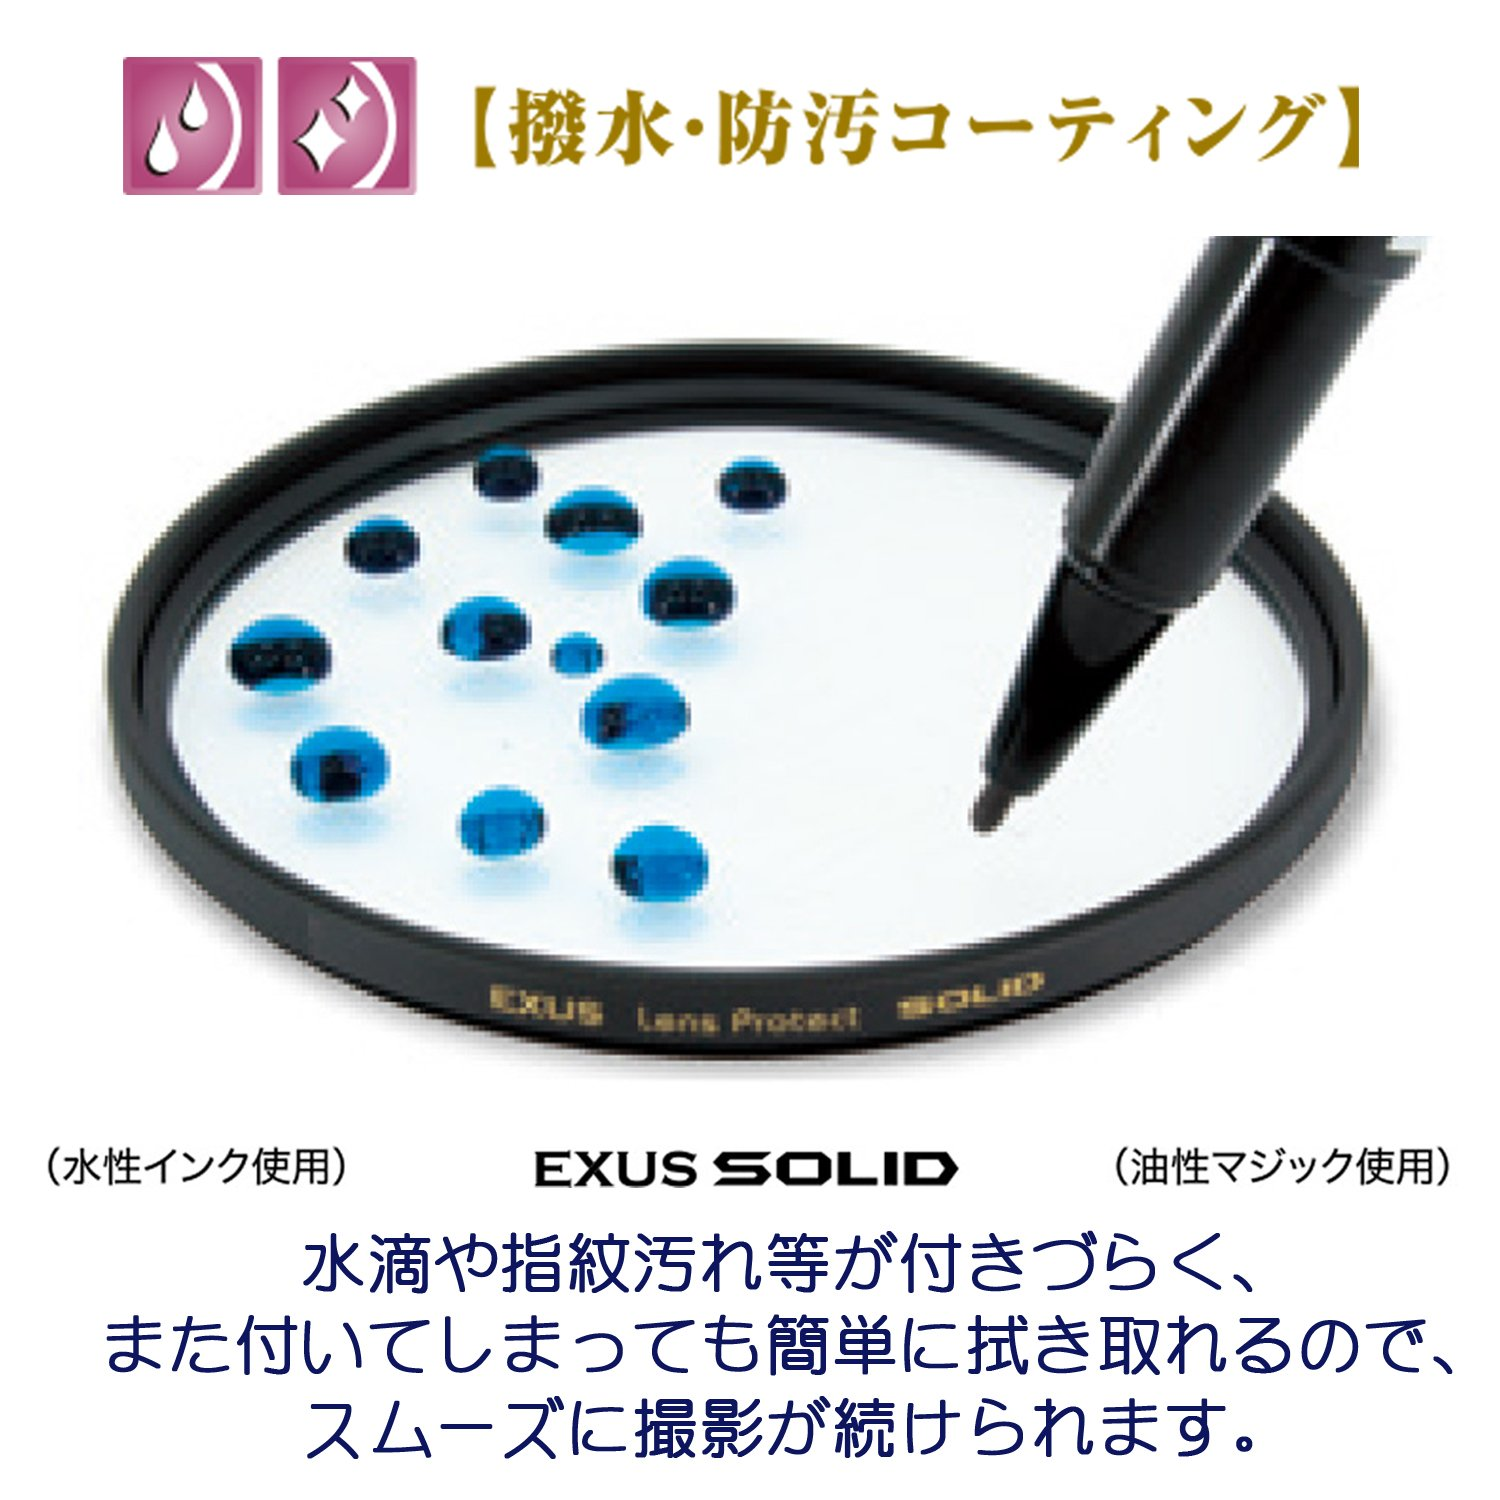 Marumi EXUS SOLID 82mm Lens Protect Filter Anti-Static Hard Coated 82 Made in Japan ''7 X Stronger'' by Marumi (Image #6)